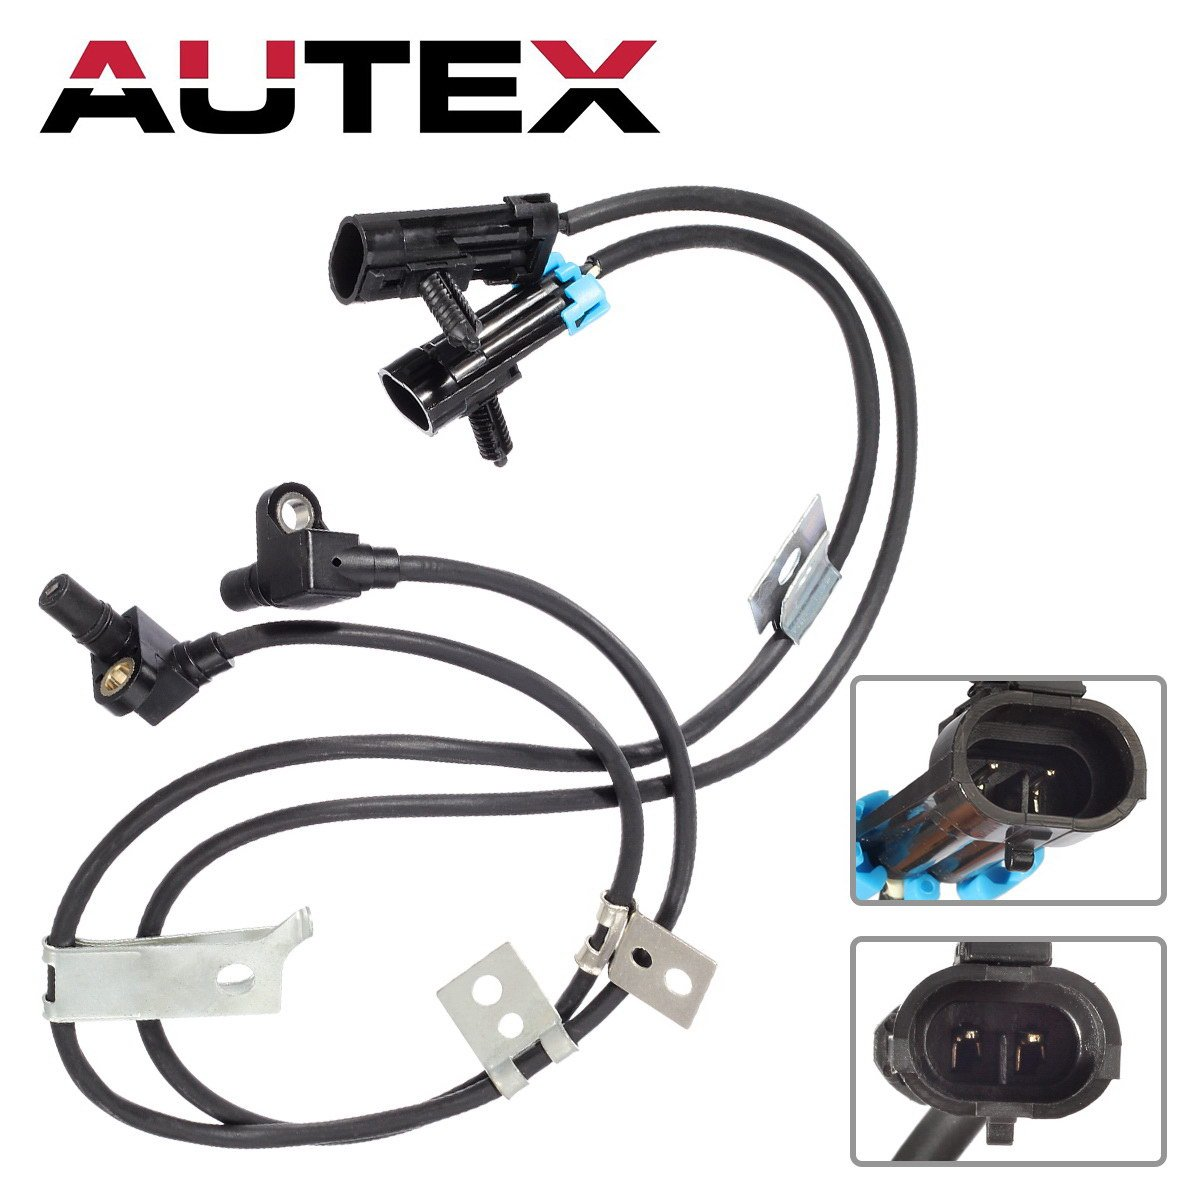 AUTEX 2 Pcs Front Left & Right ABS Wheel Speed Sensor ALS1184 5S8371  Compatible with Chevrolet K1500 K2500 SUBURBAN Tahoe 1996-1999 K2500 K3500  PICKUP